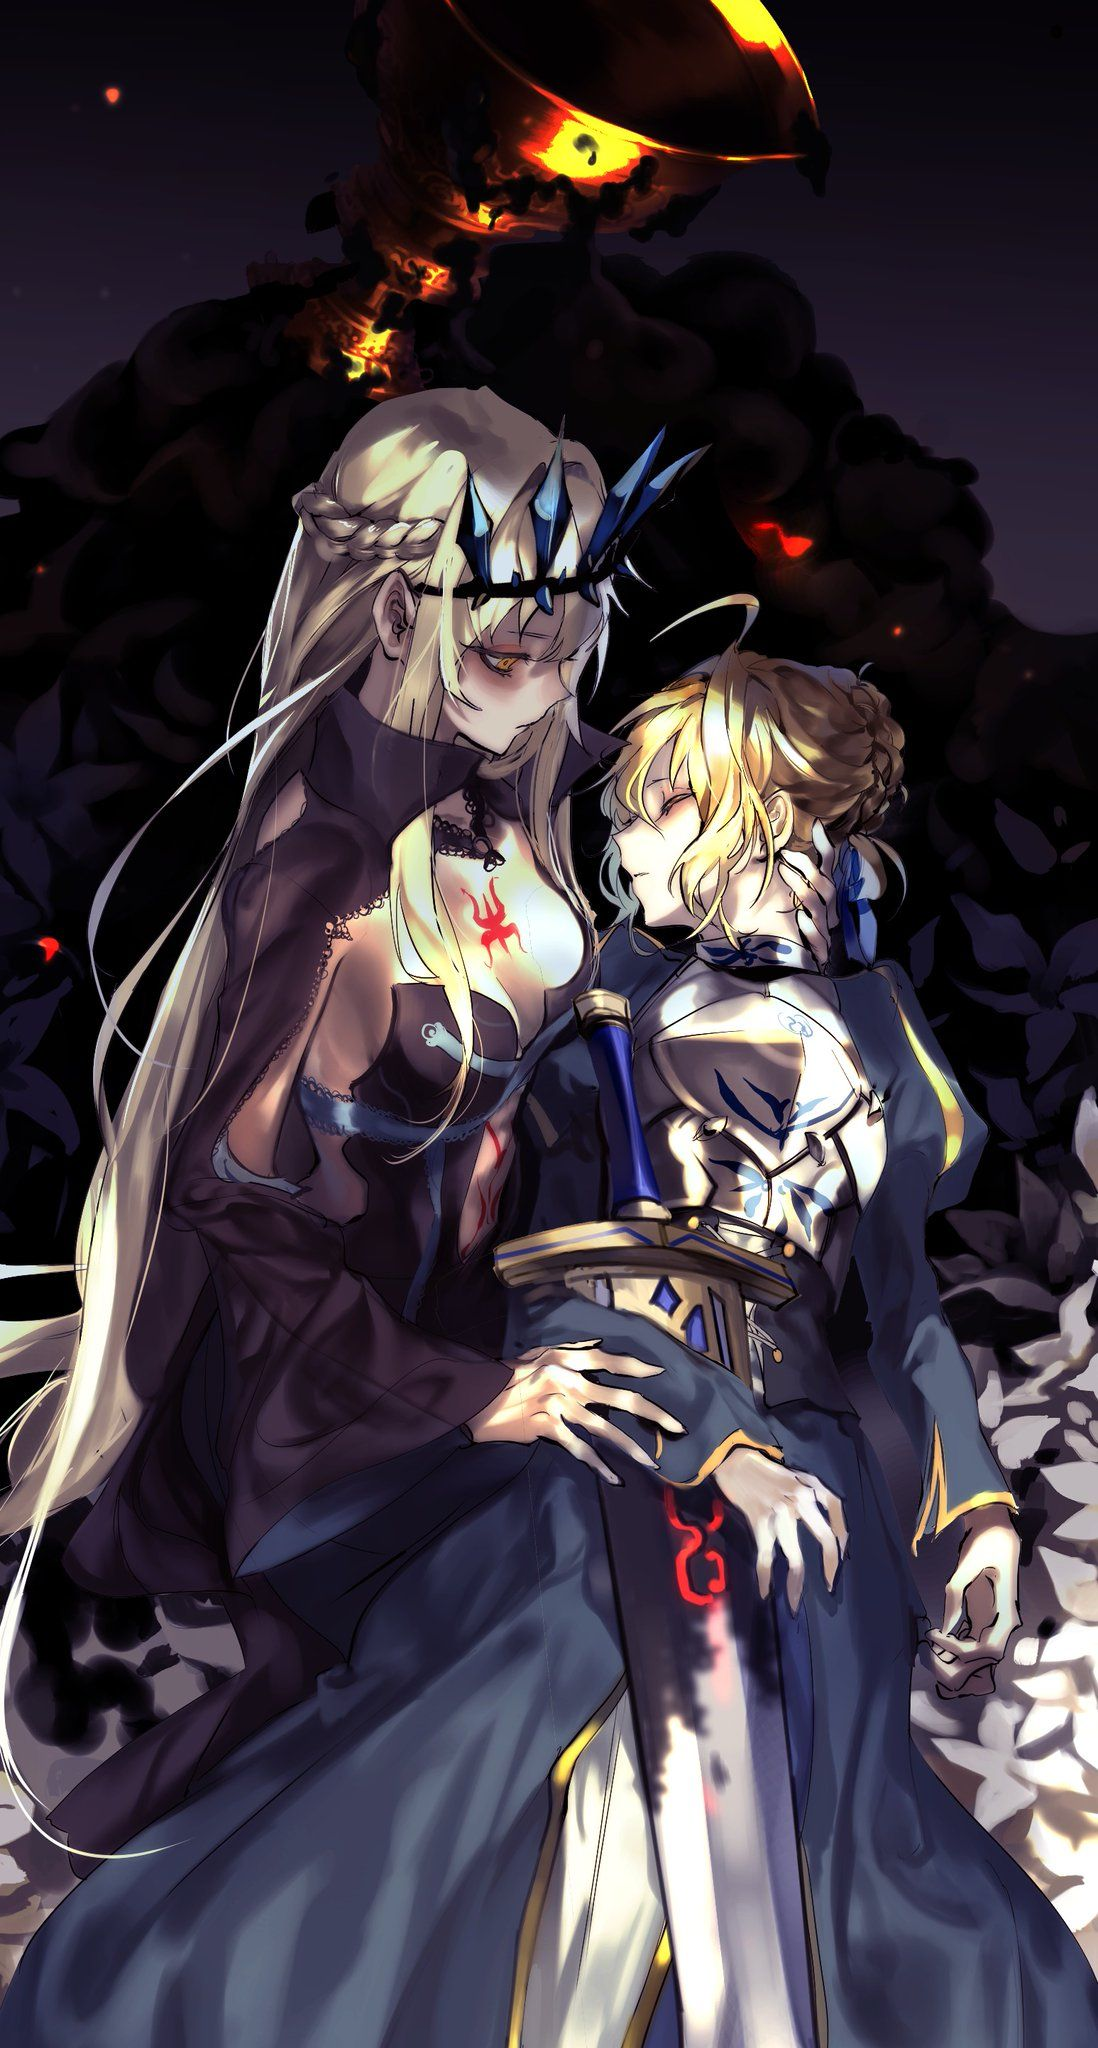 Illustration Wallpaper Art Of Morgan Le Fay Wanted To Save Her Lanccelot Watch Aegis Attilia Sister Artoria Pendragon From